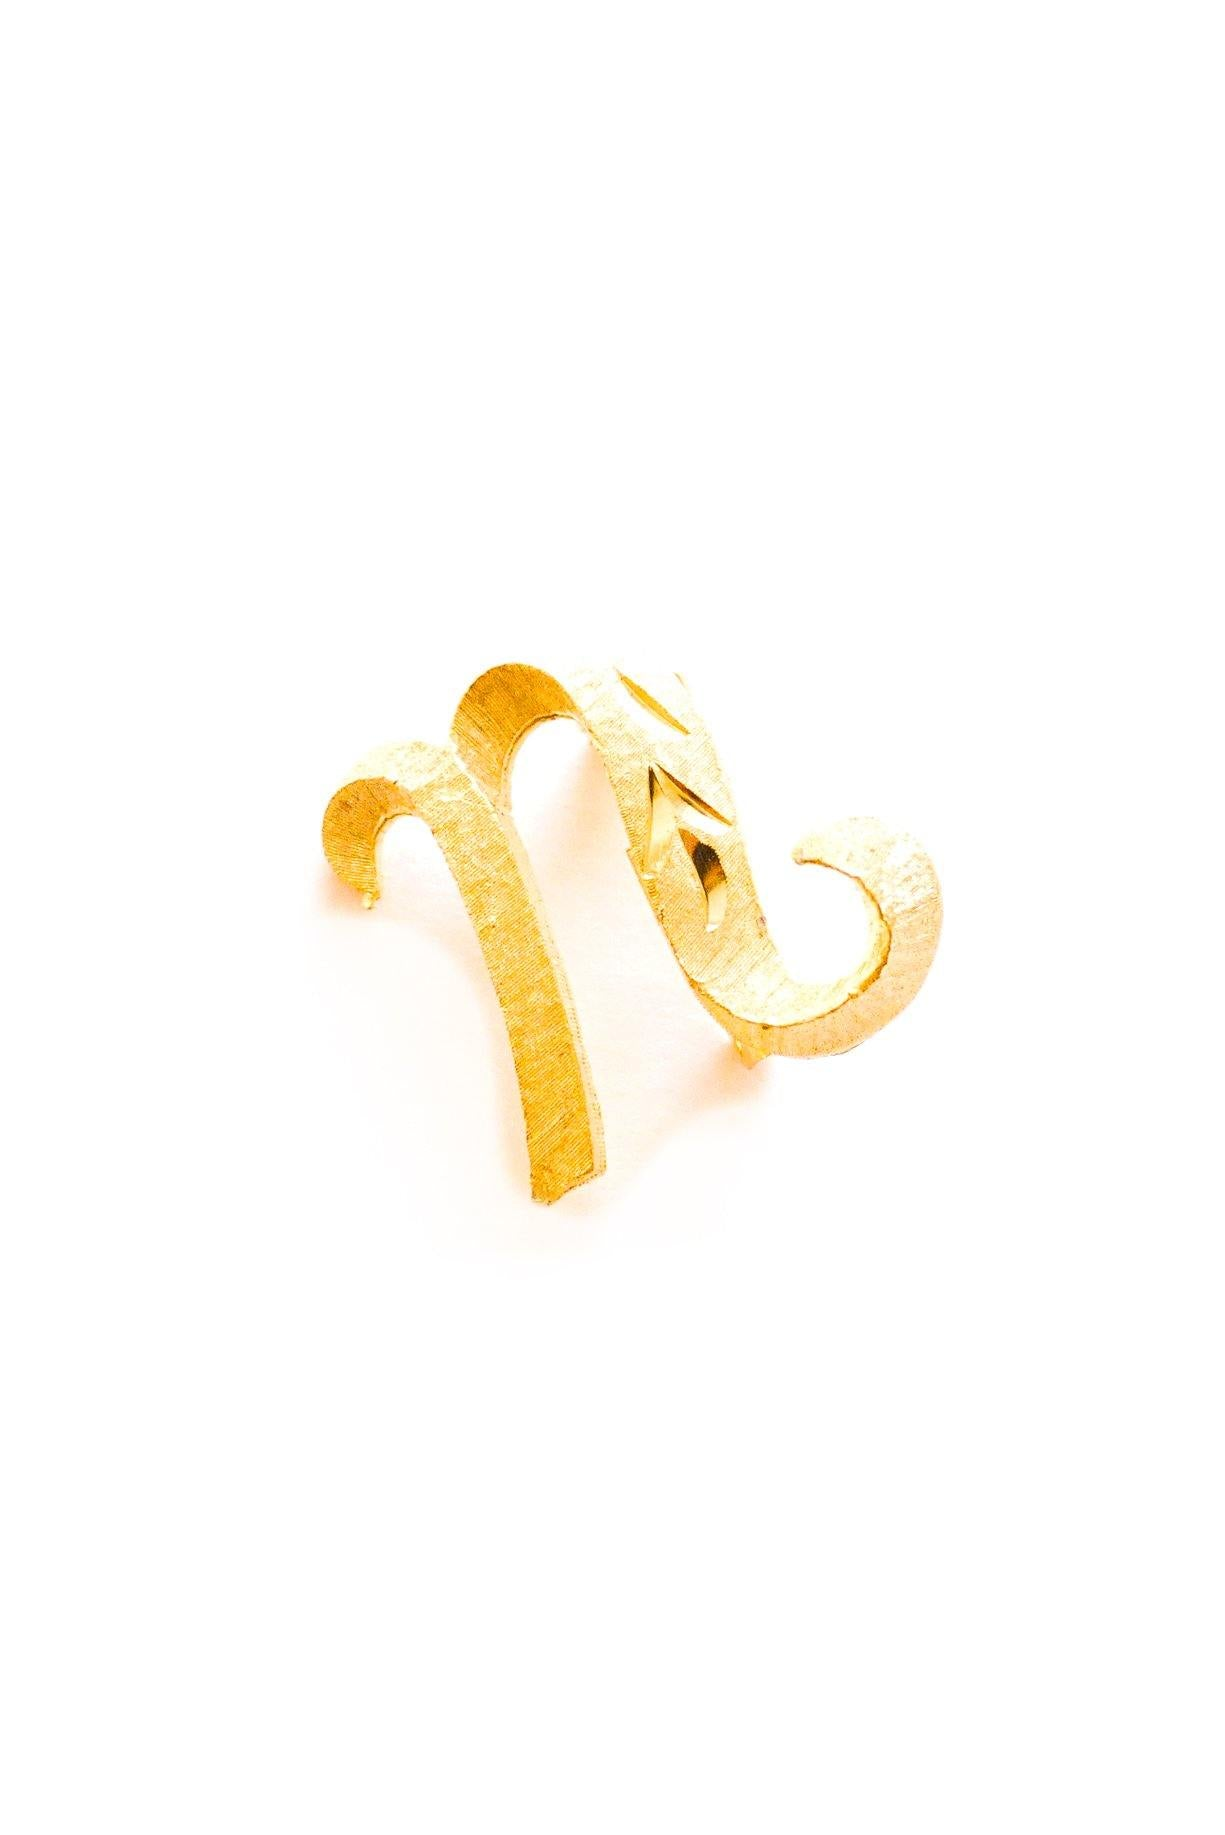 N or U Initial Brooch